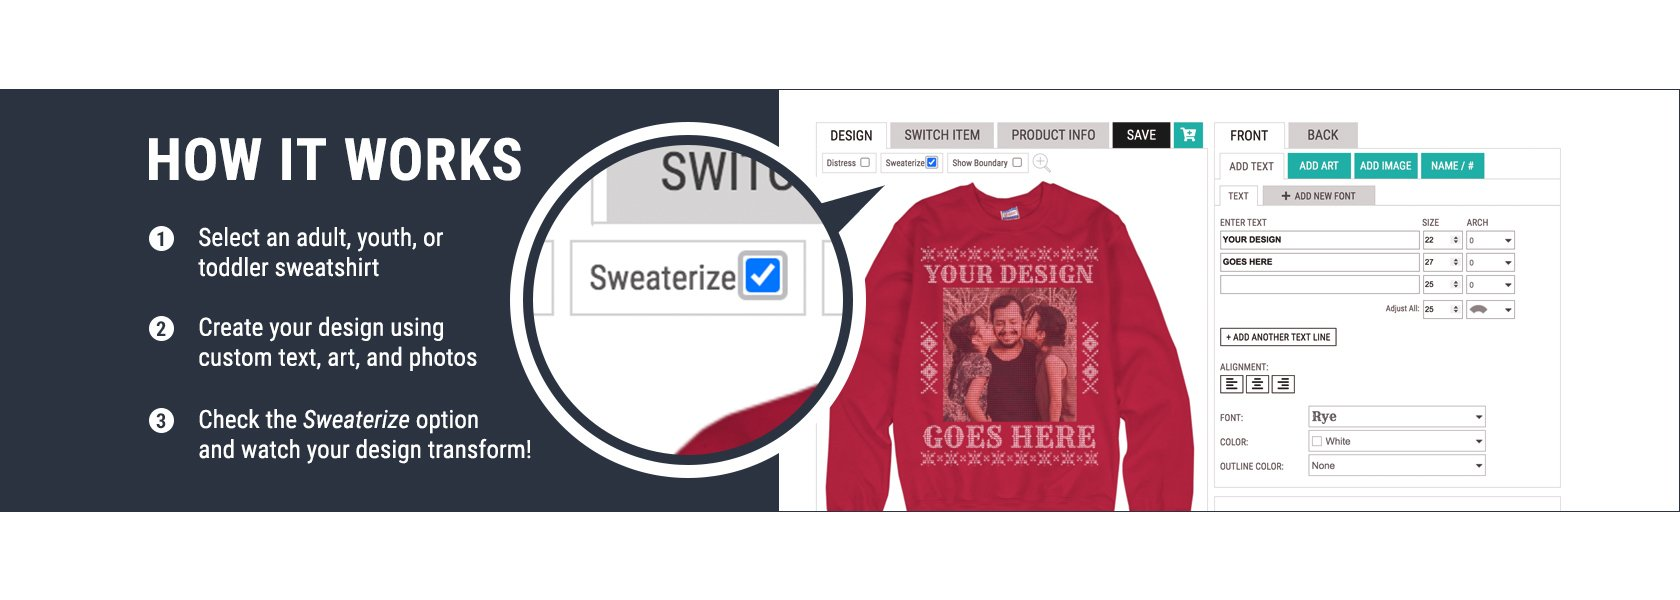 How To Use The Sweaterize It! Knit Filter